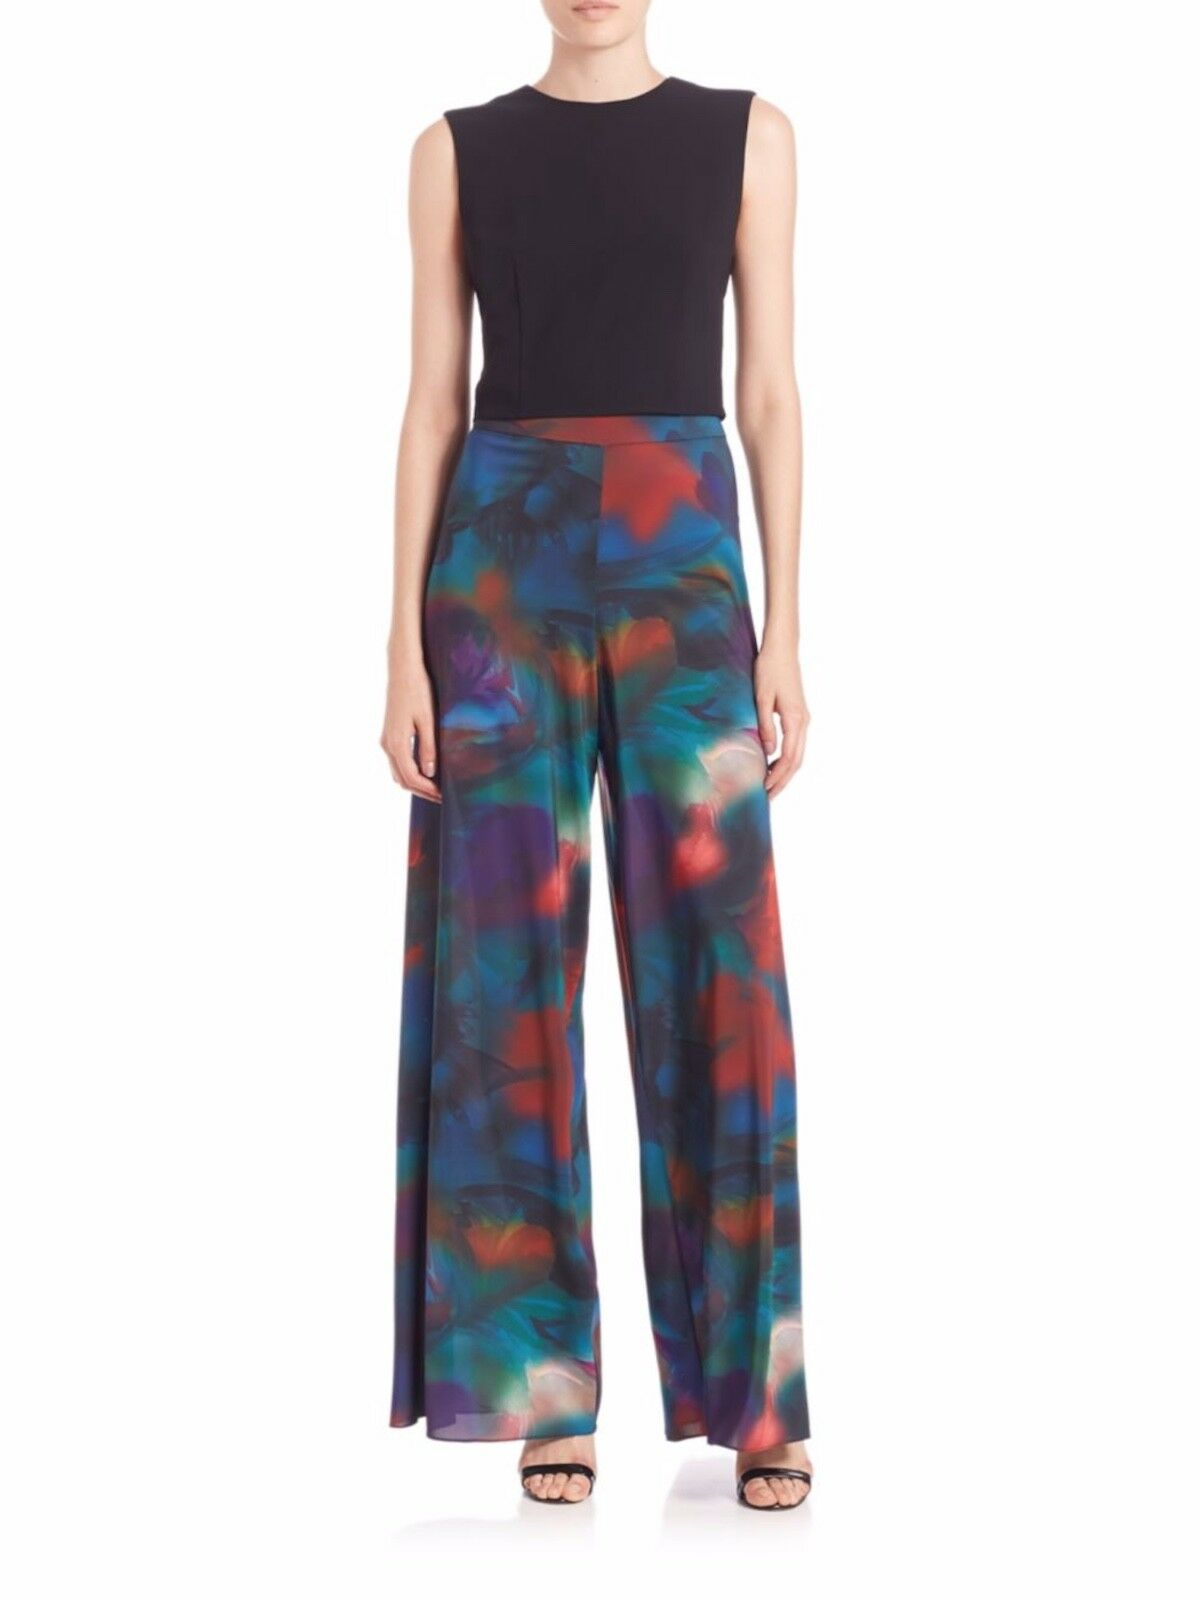 Alice + Olivia Kaleidoscopic High Waist Wide-Leg Paisley Crepe Pants 0 NEW